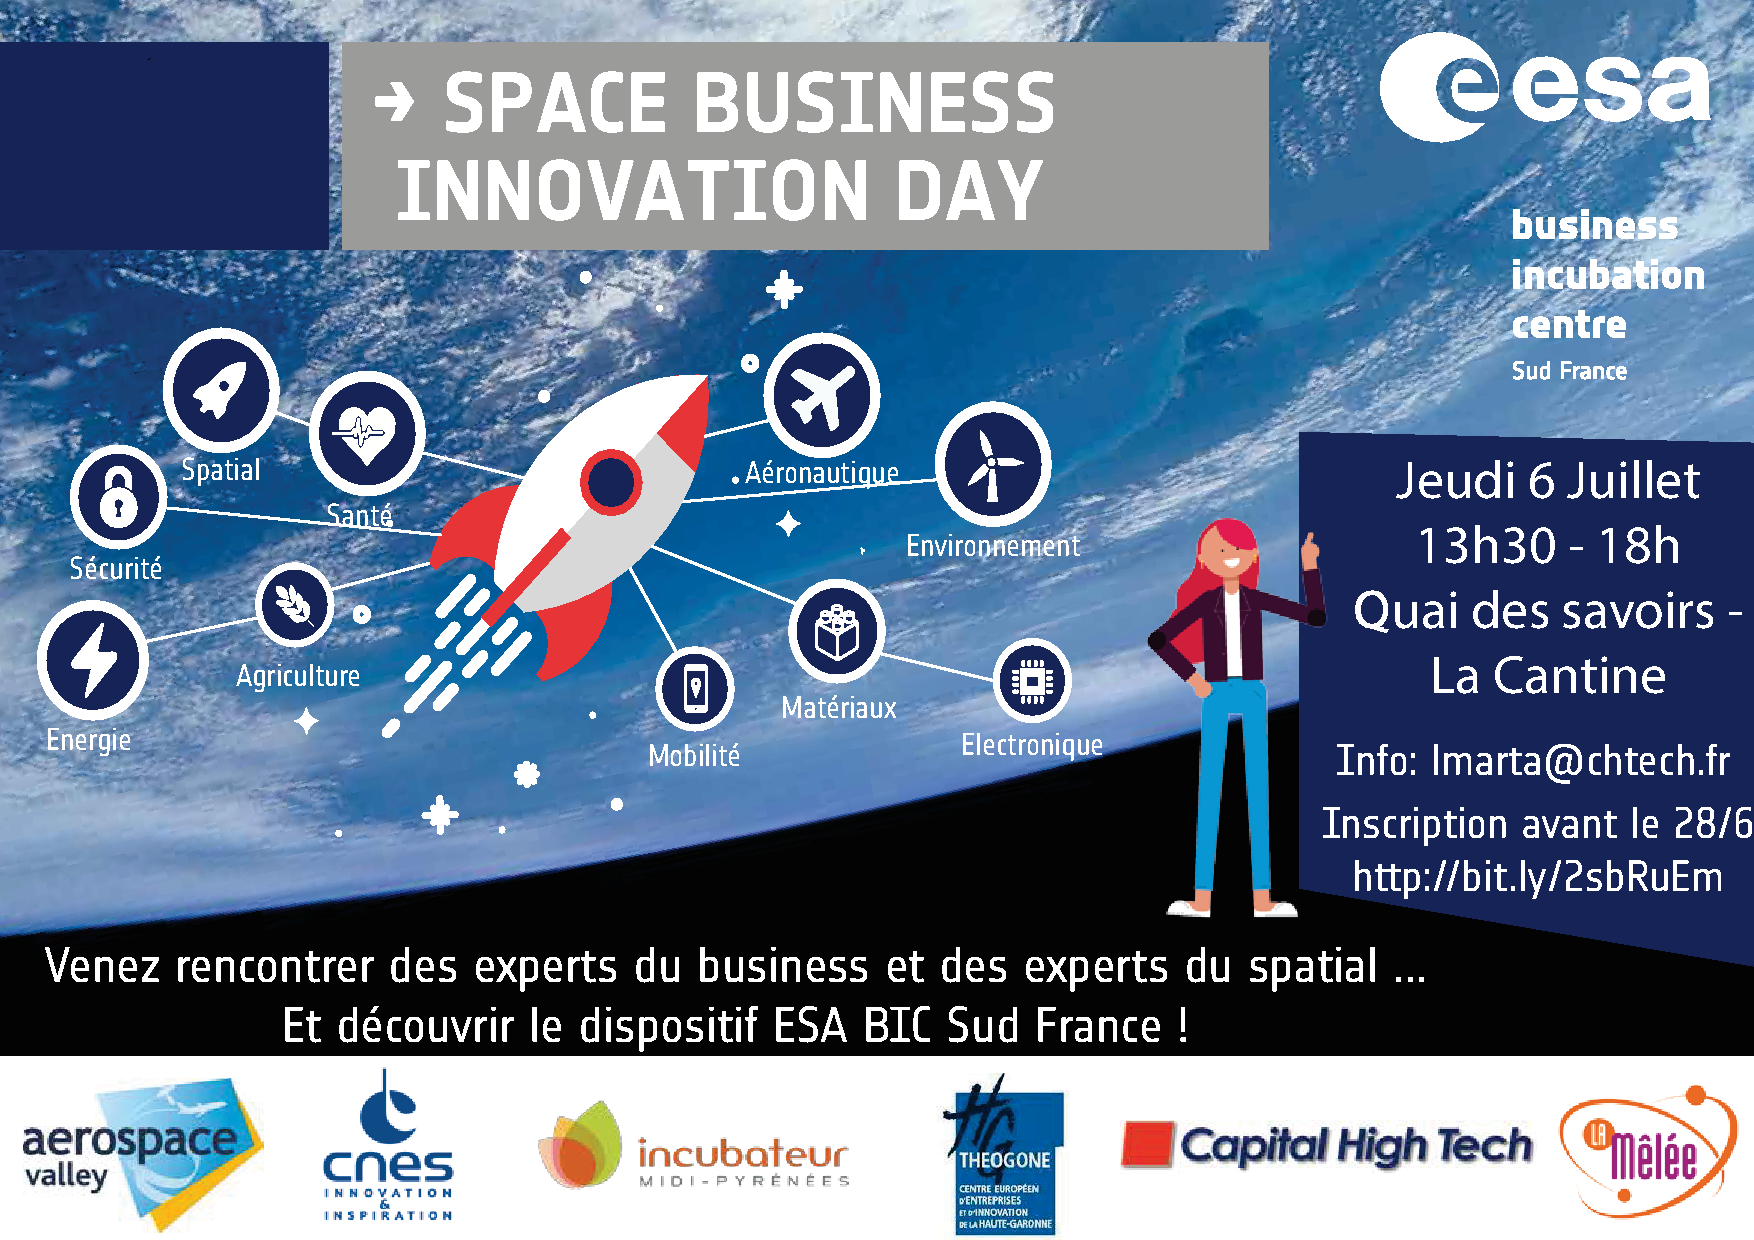 Space Business innovation Day